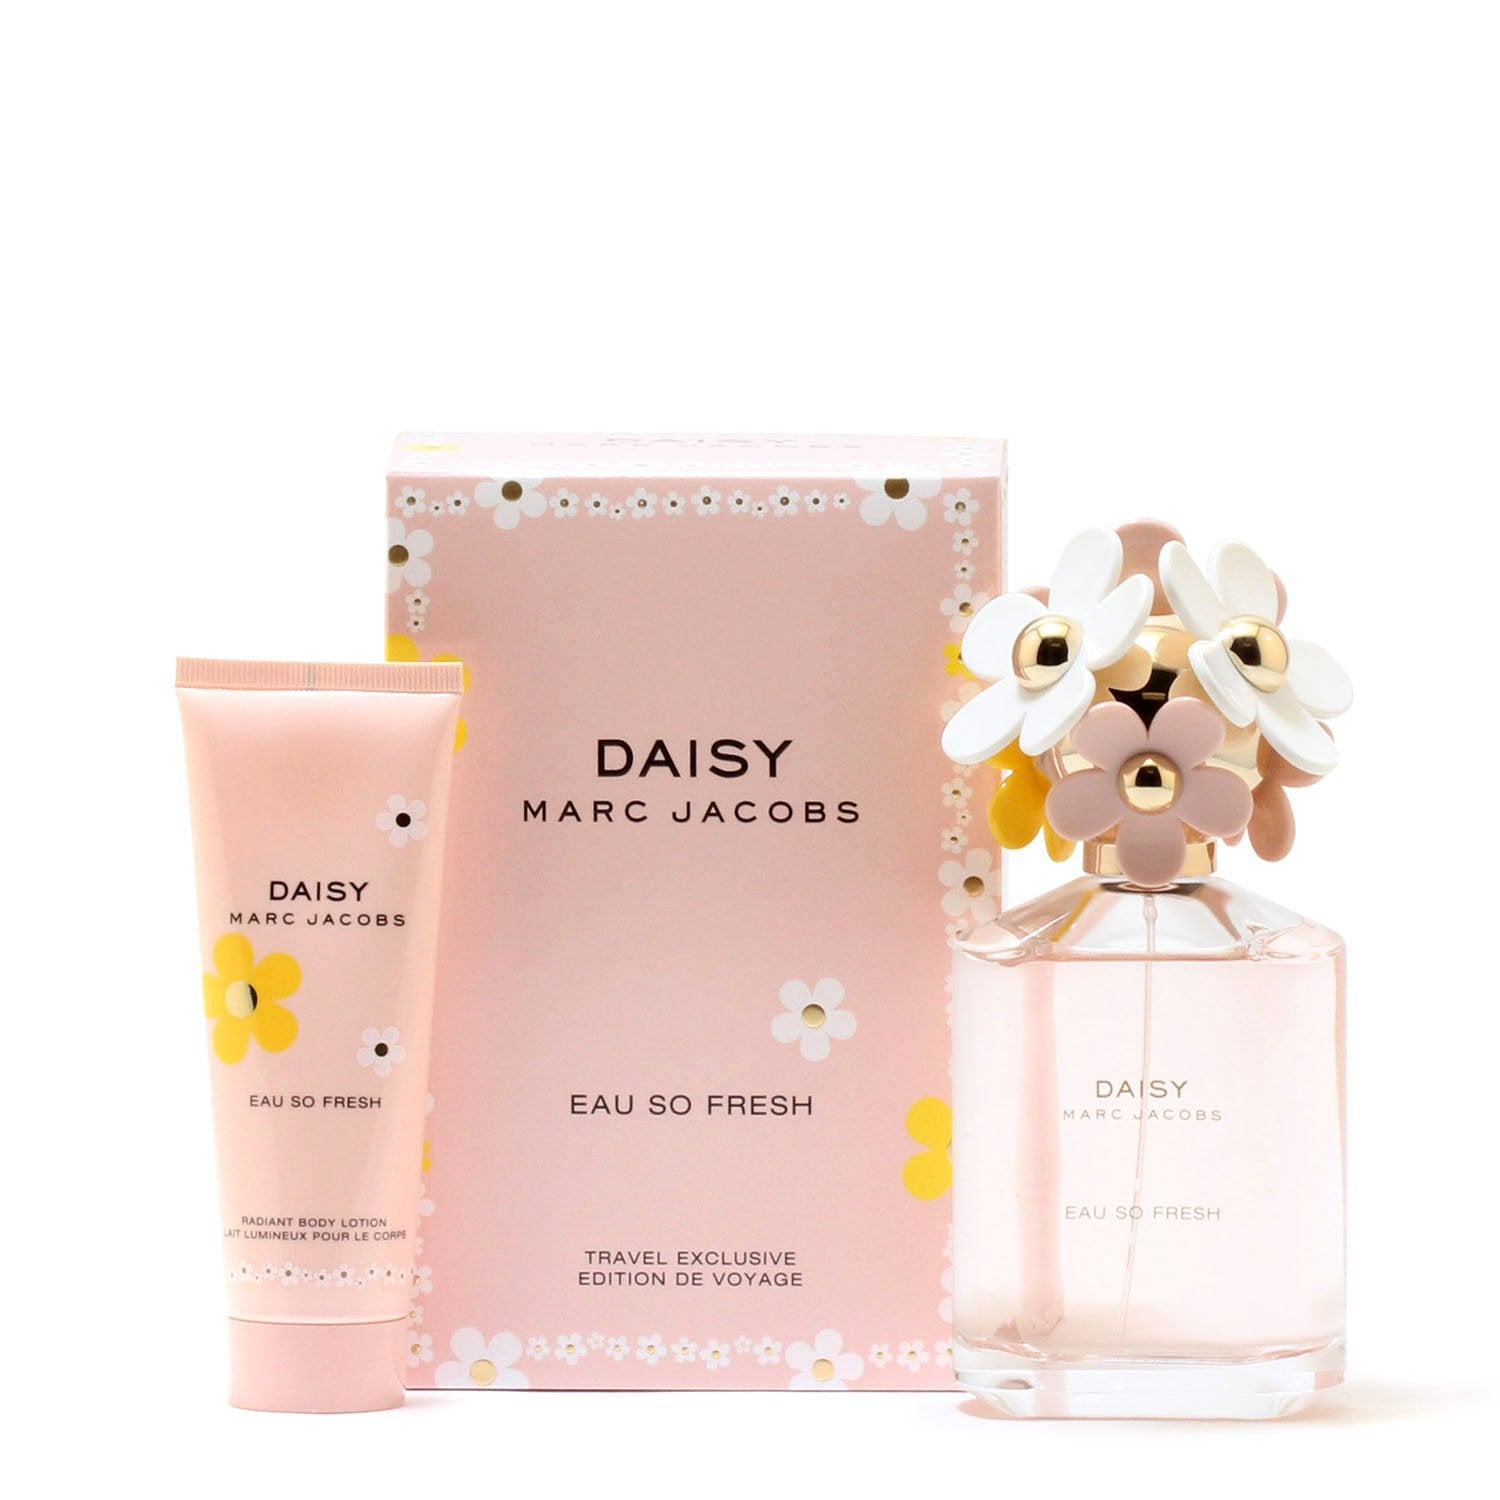 Perfume Sets - DAISY EAU SO FRESH FOR WOMEN BY MARC JACOBS - TRAVEL EDITION GIFT SET